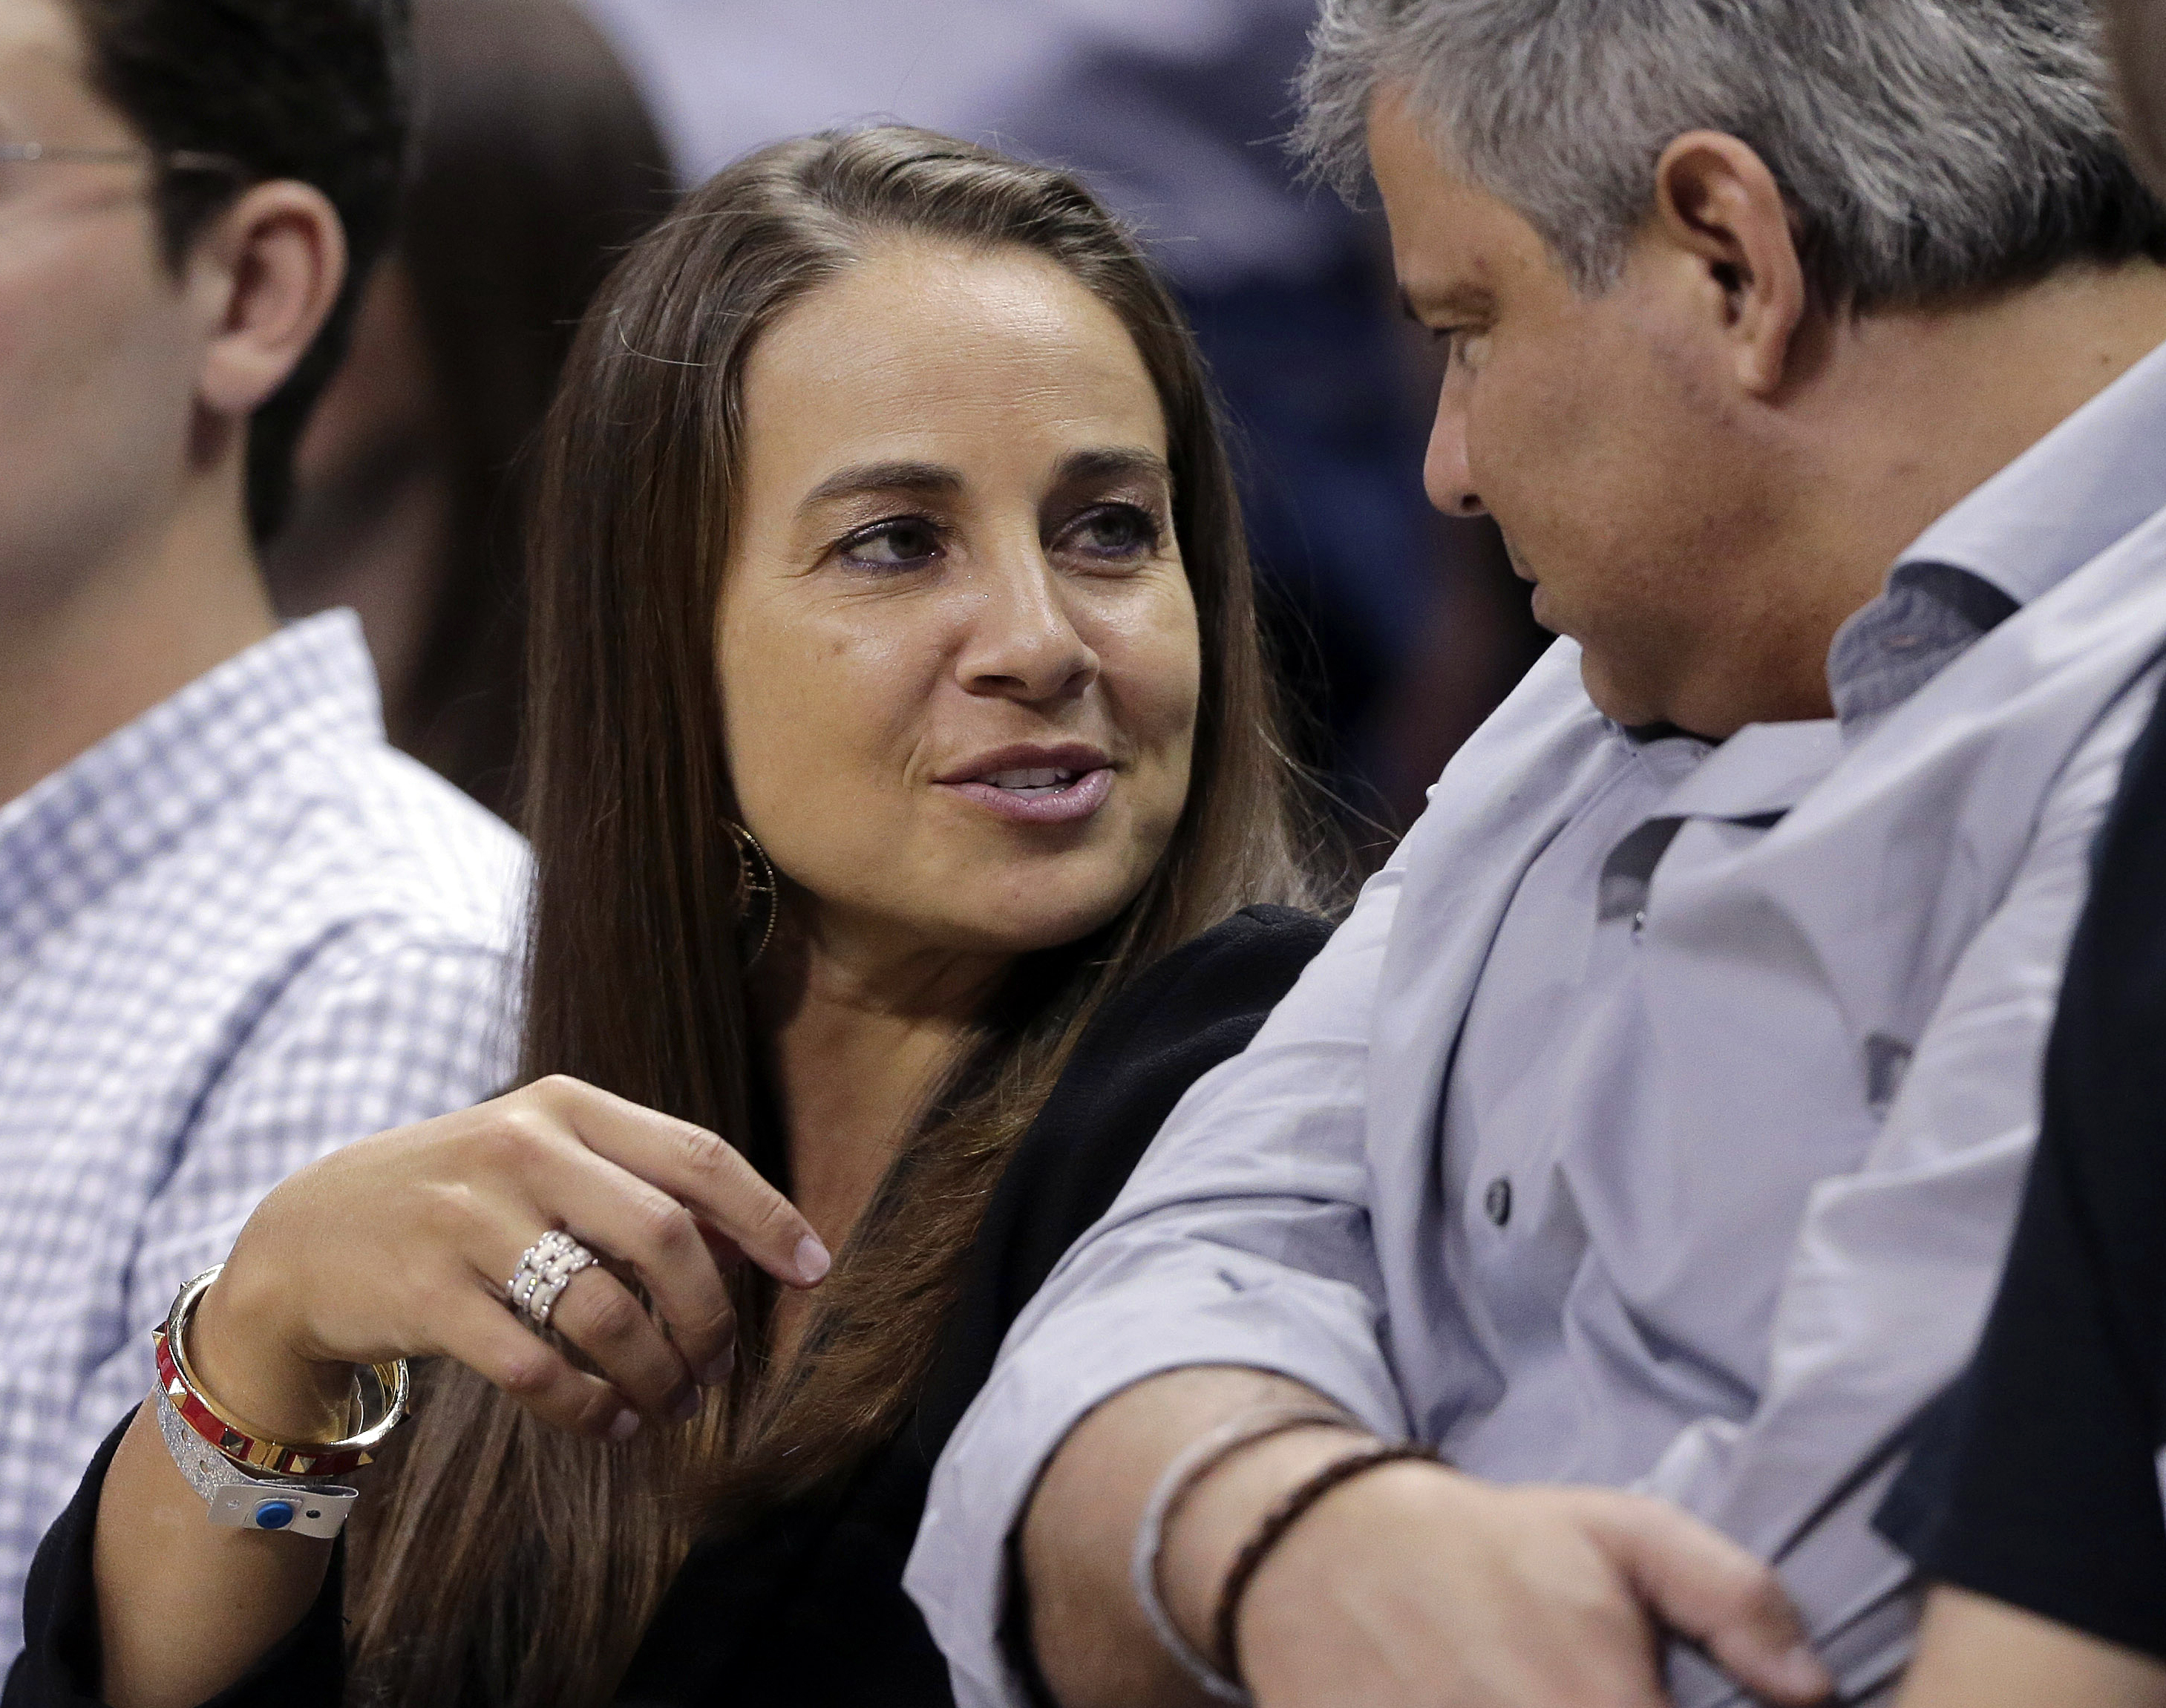 The San Antonio Stars' Becky Hammon, seen here attending a Spurs playoff game, has been hired as a full-time assistant coach, joining the NBA's reigning champions for next season.